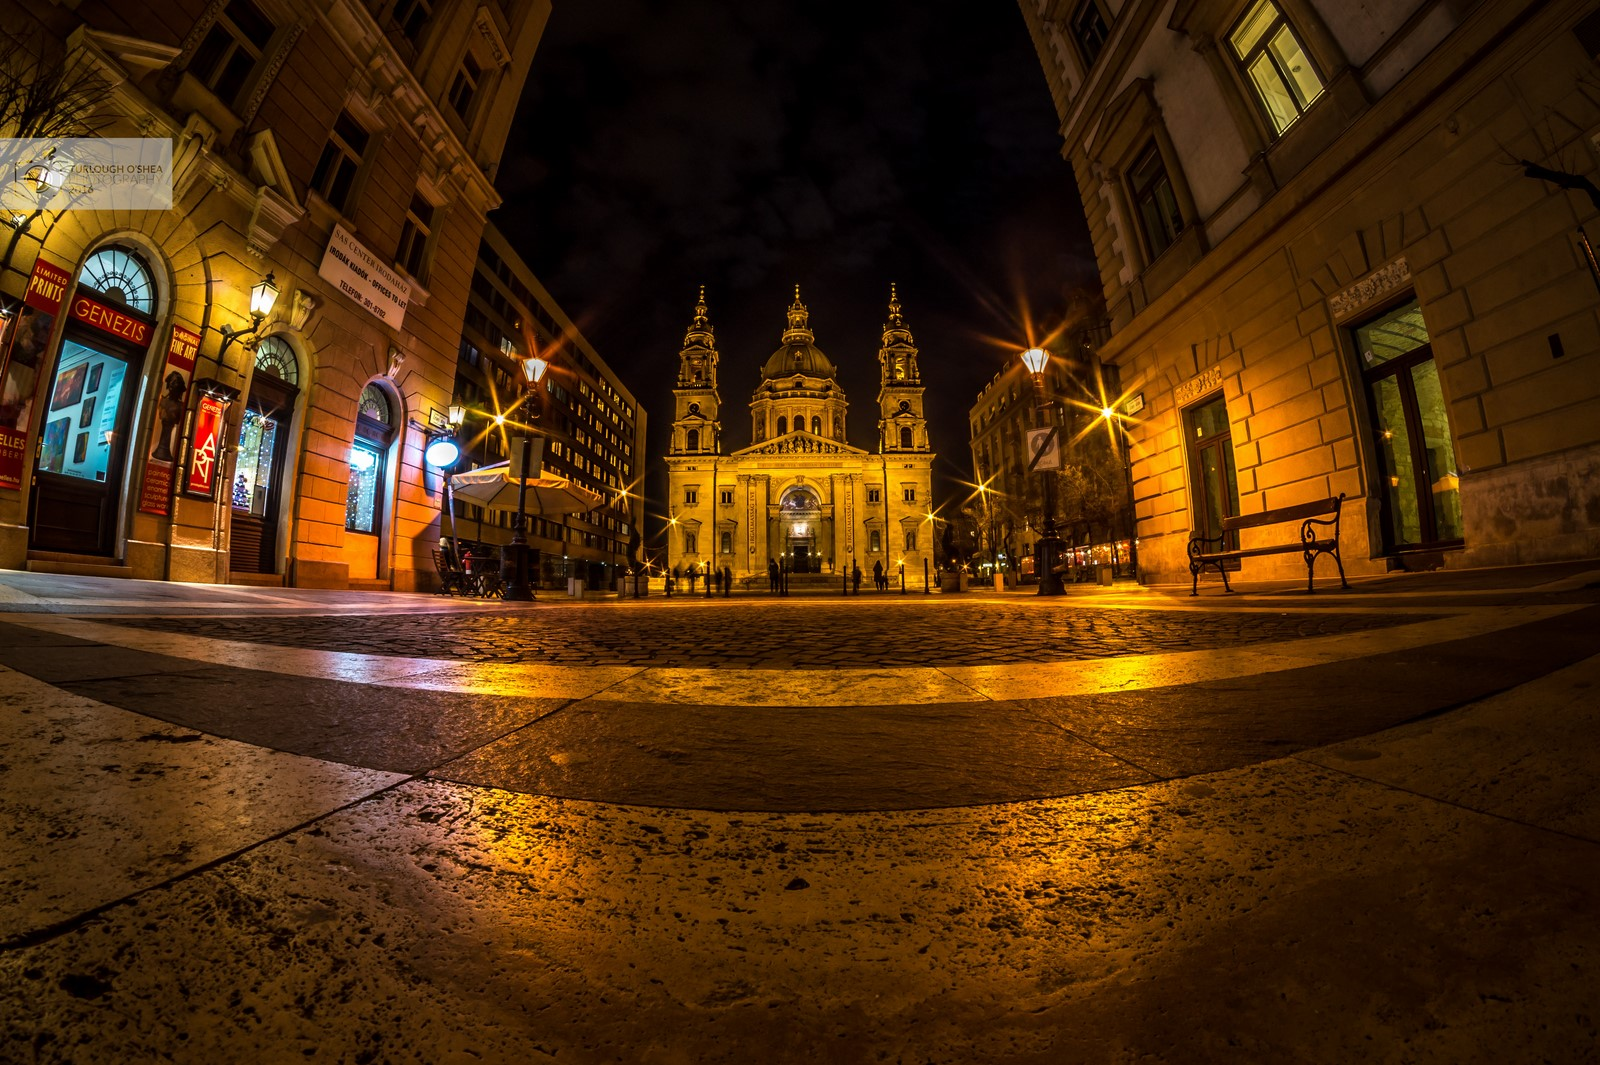 St Stephens Basilica by night